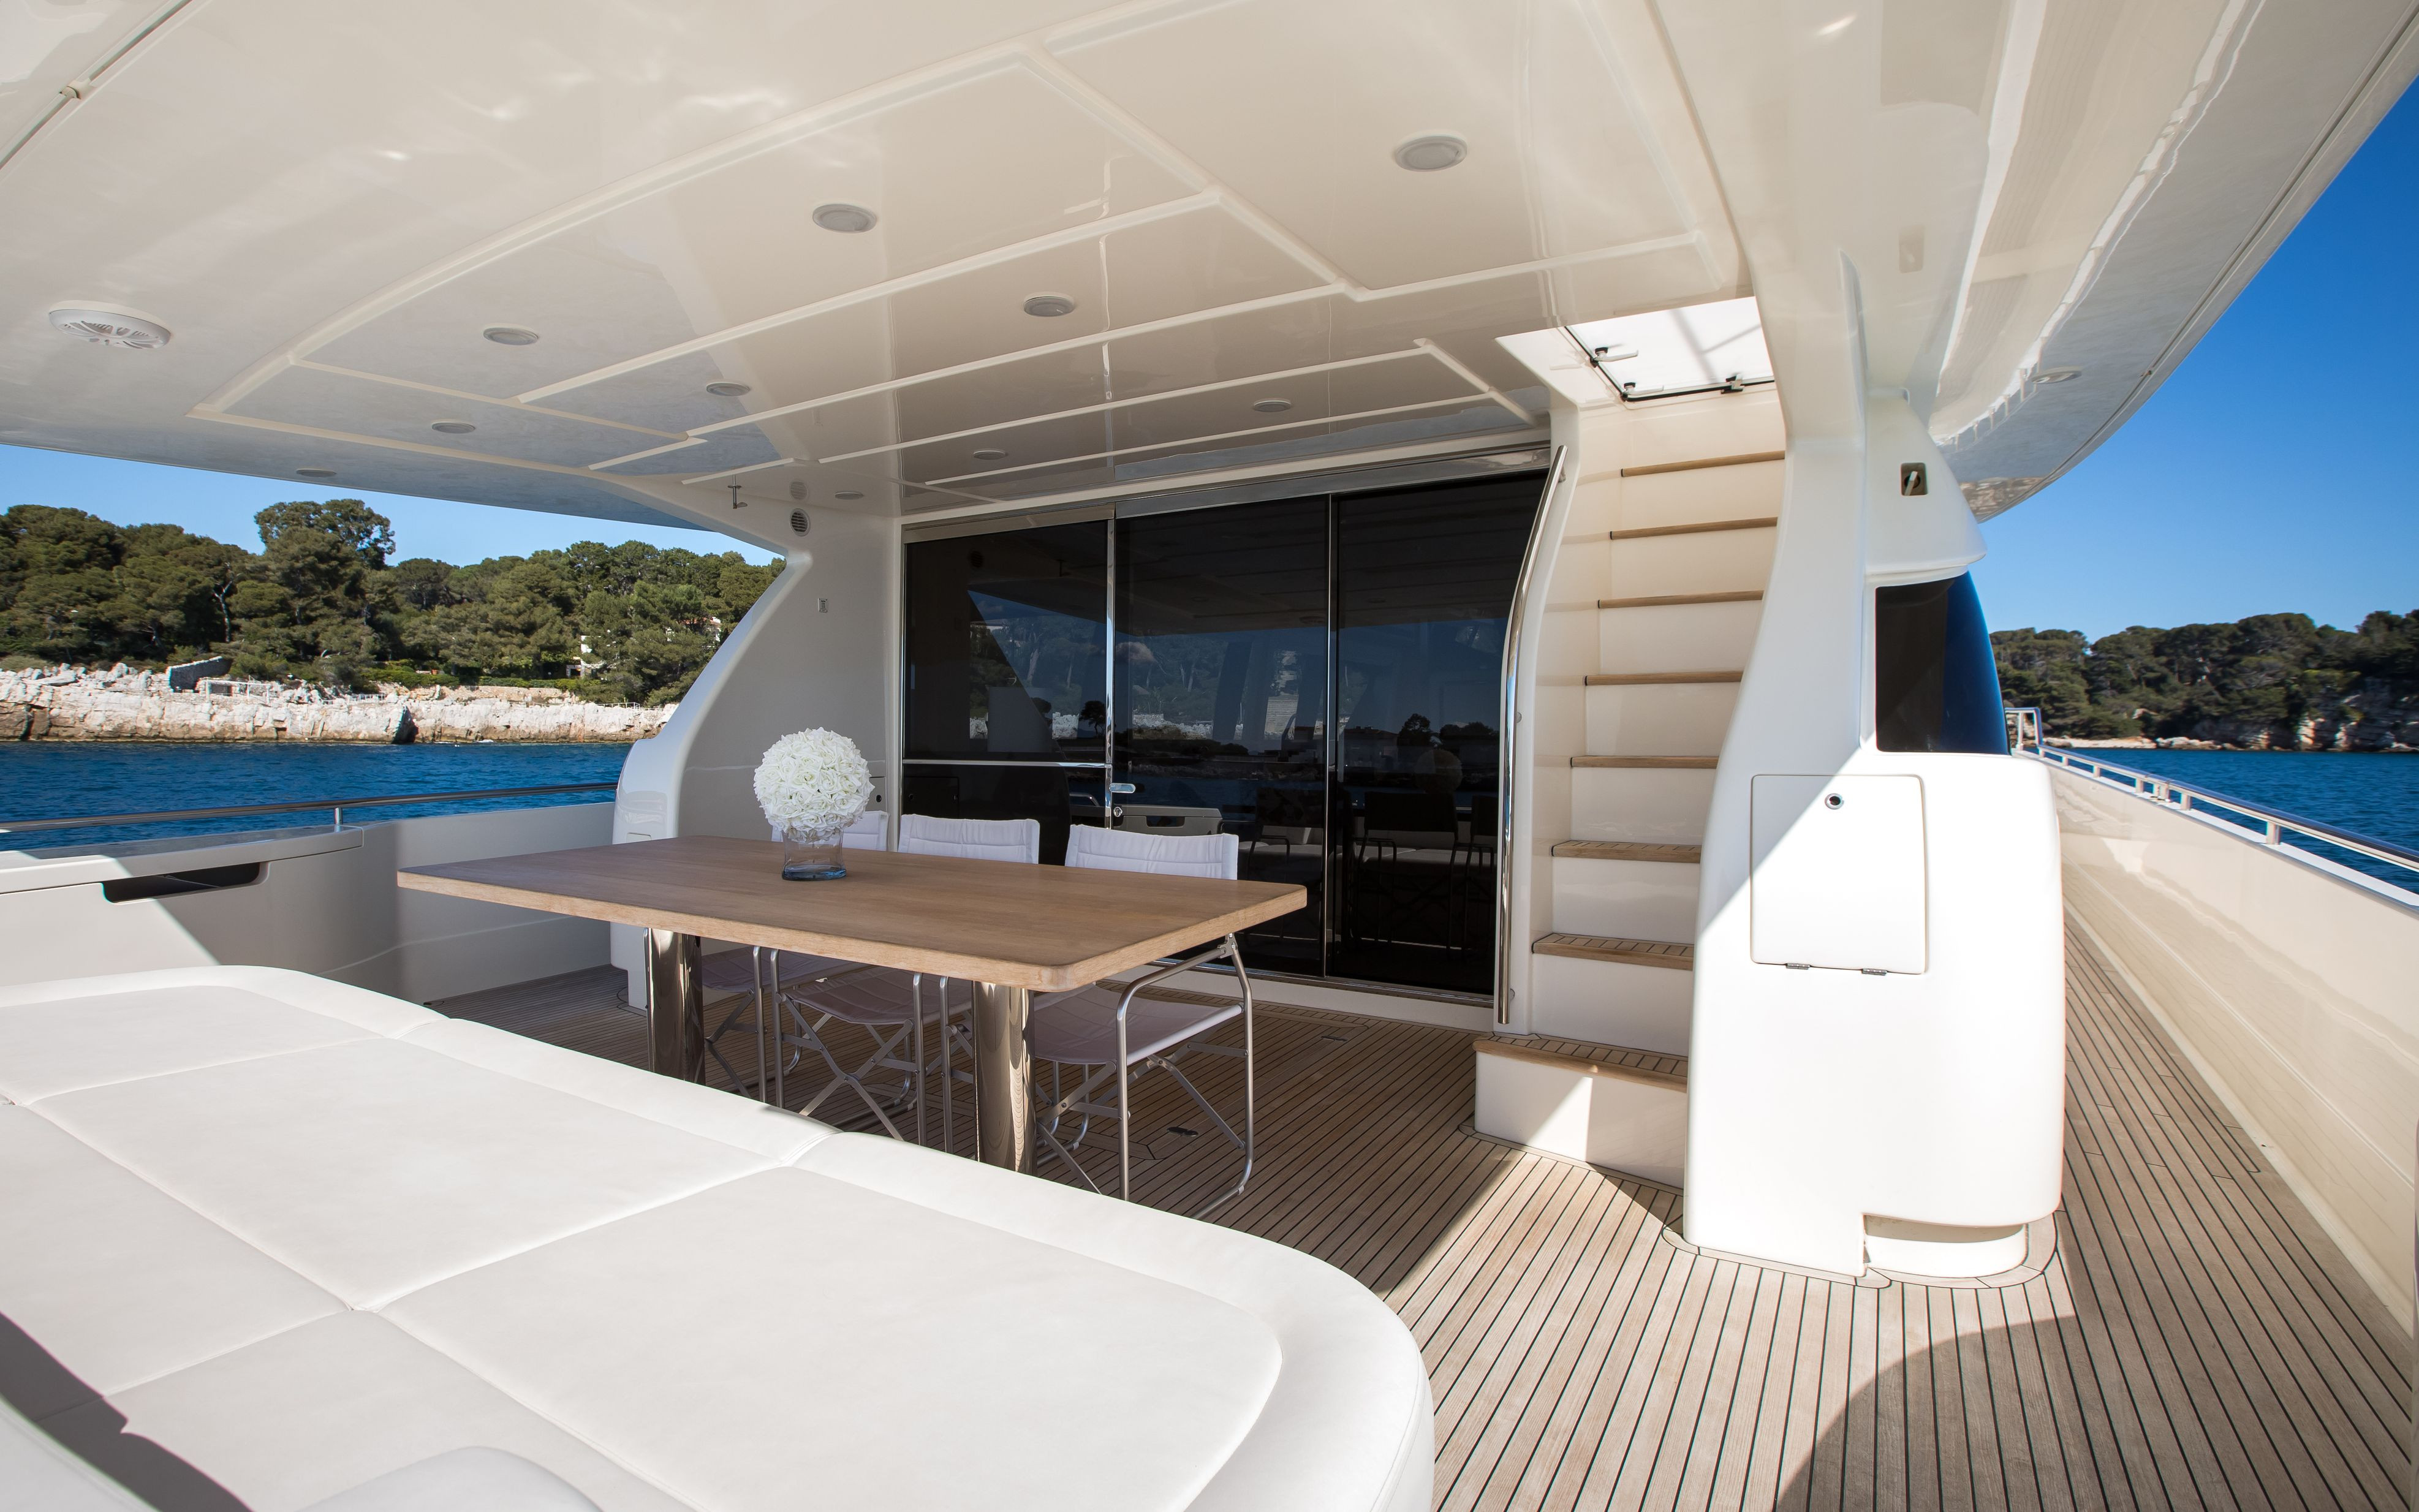 M/Y IGELE – book your perfect holidays now!